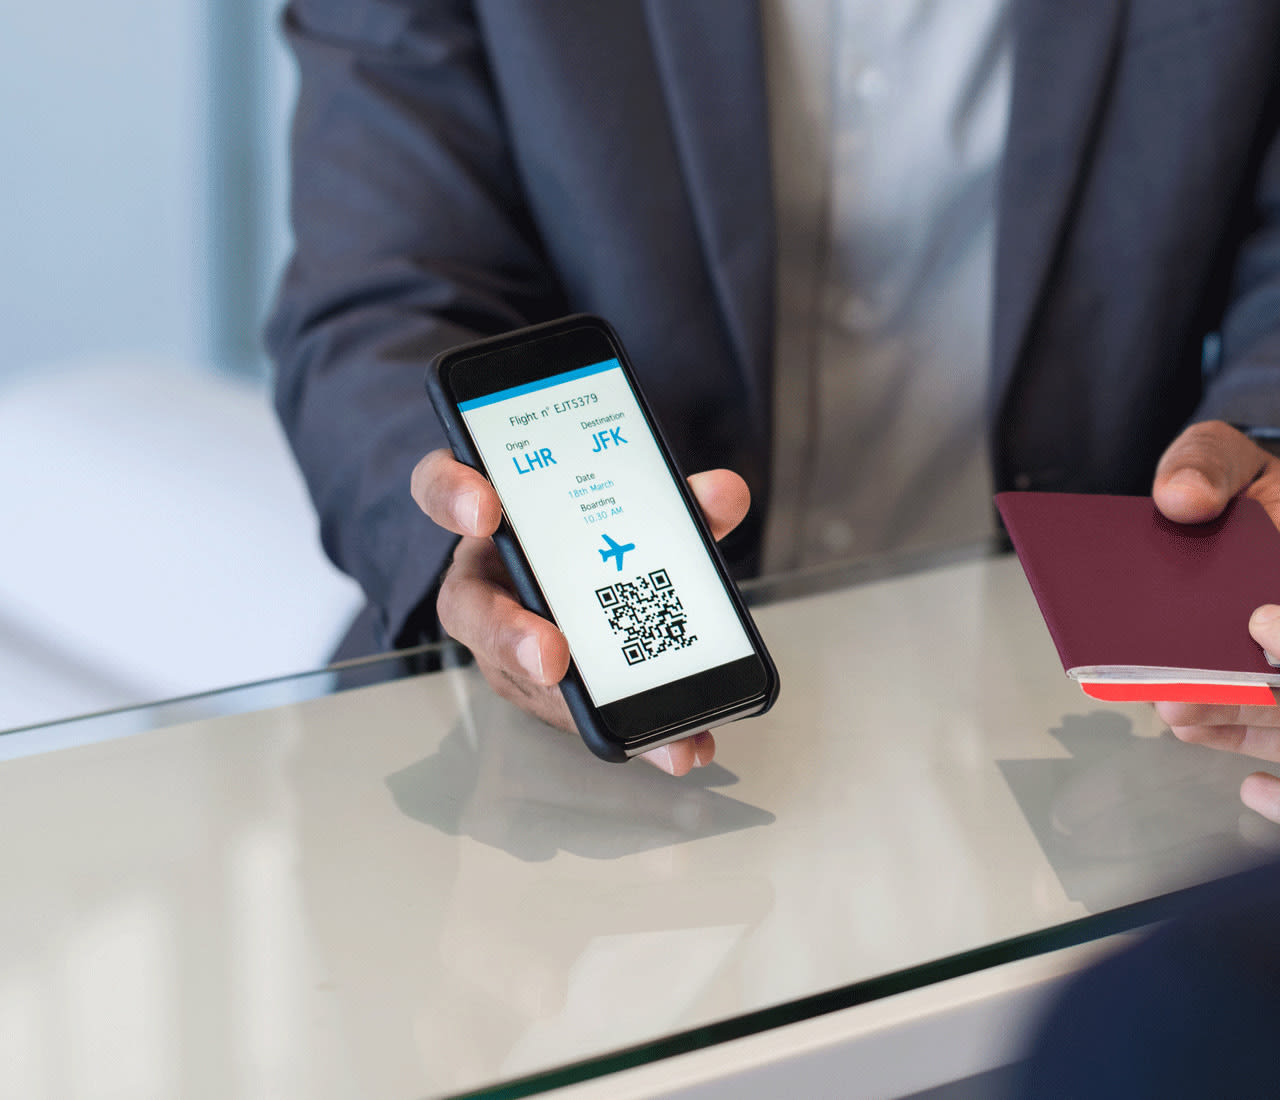 Scanning boarding pass to access flight updates, gate assignment, upgrades and vouchers